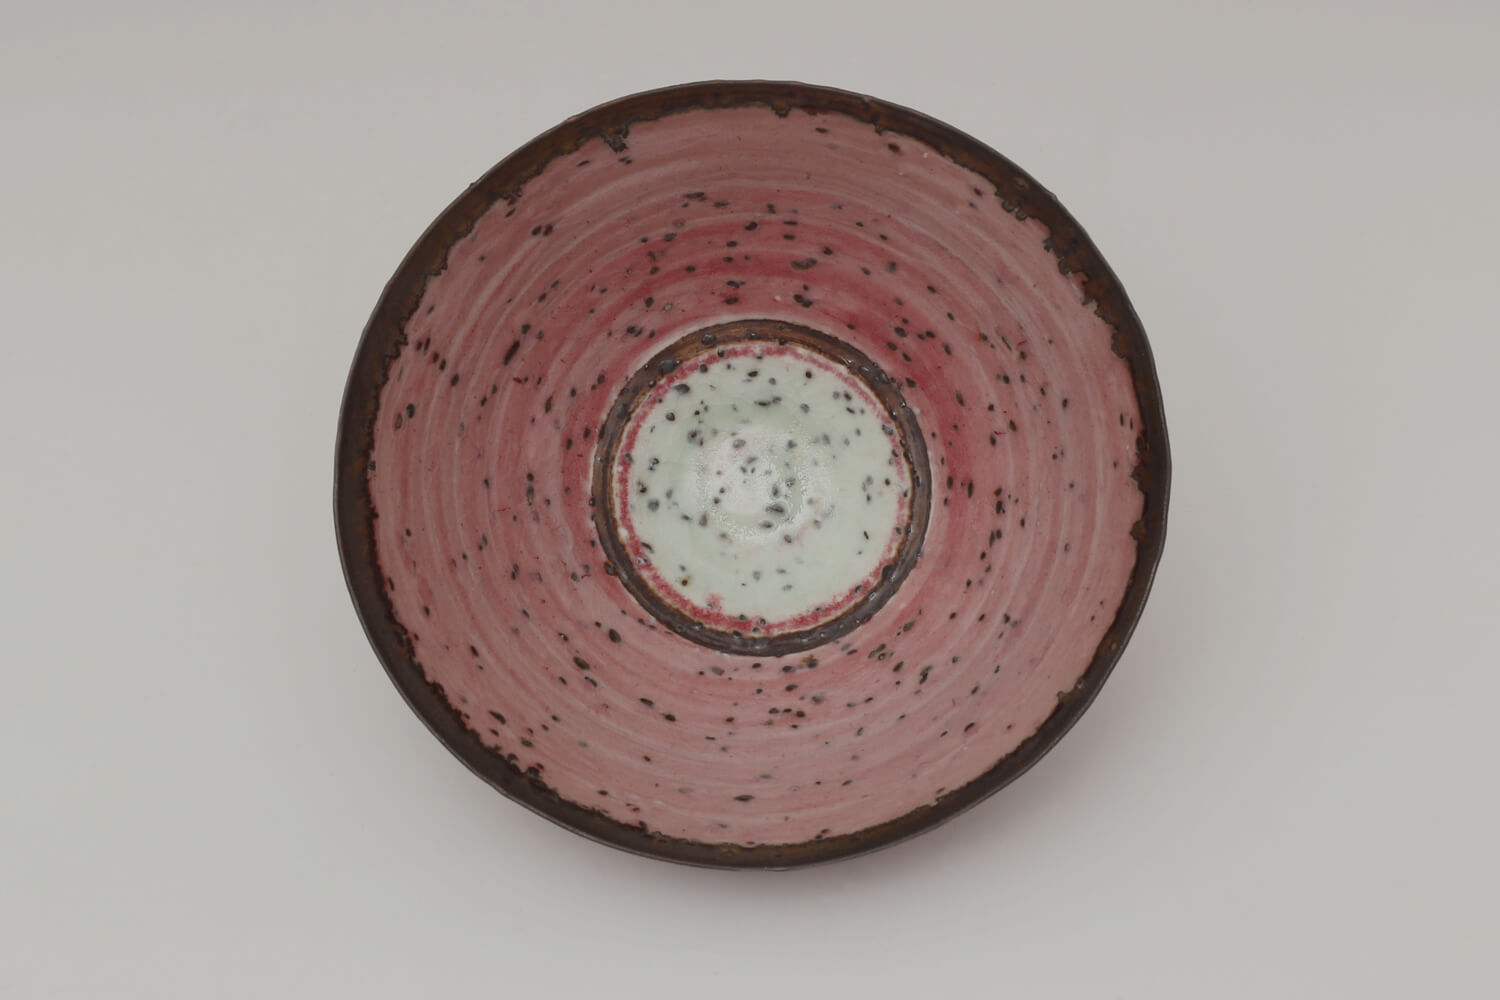 Peter Wills Ceramic Conical Copper Red River Grogged Porcelain Bowl 197